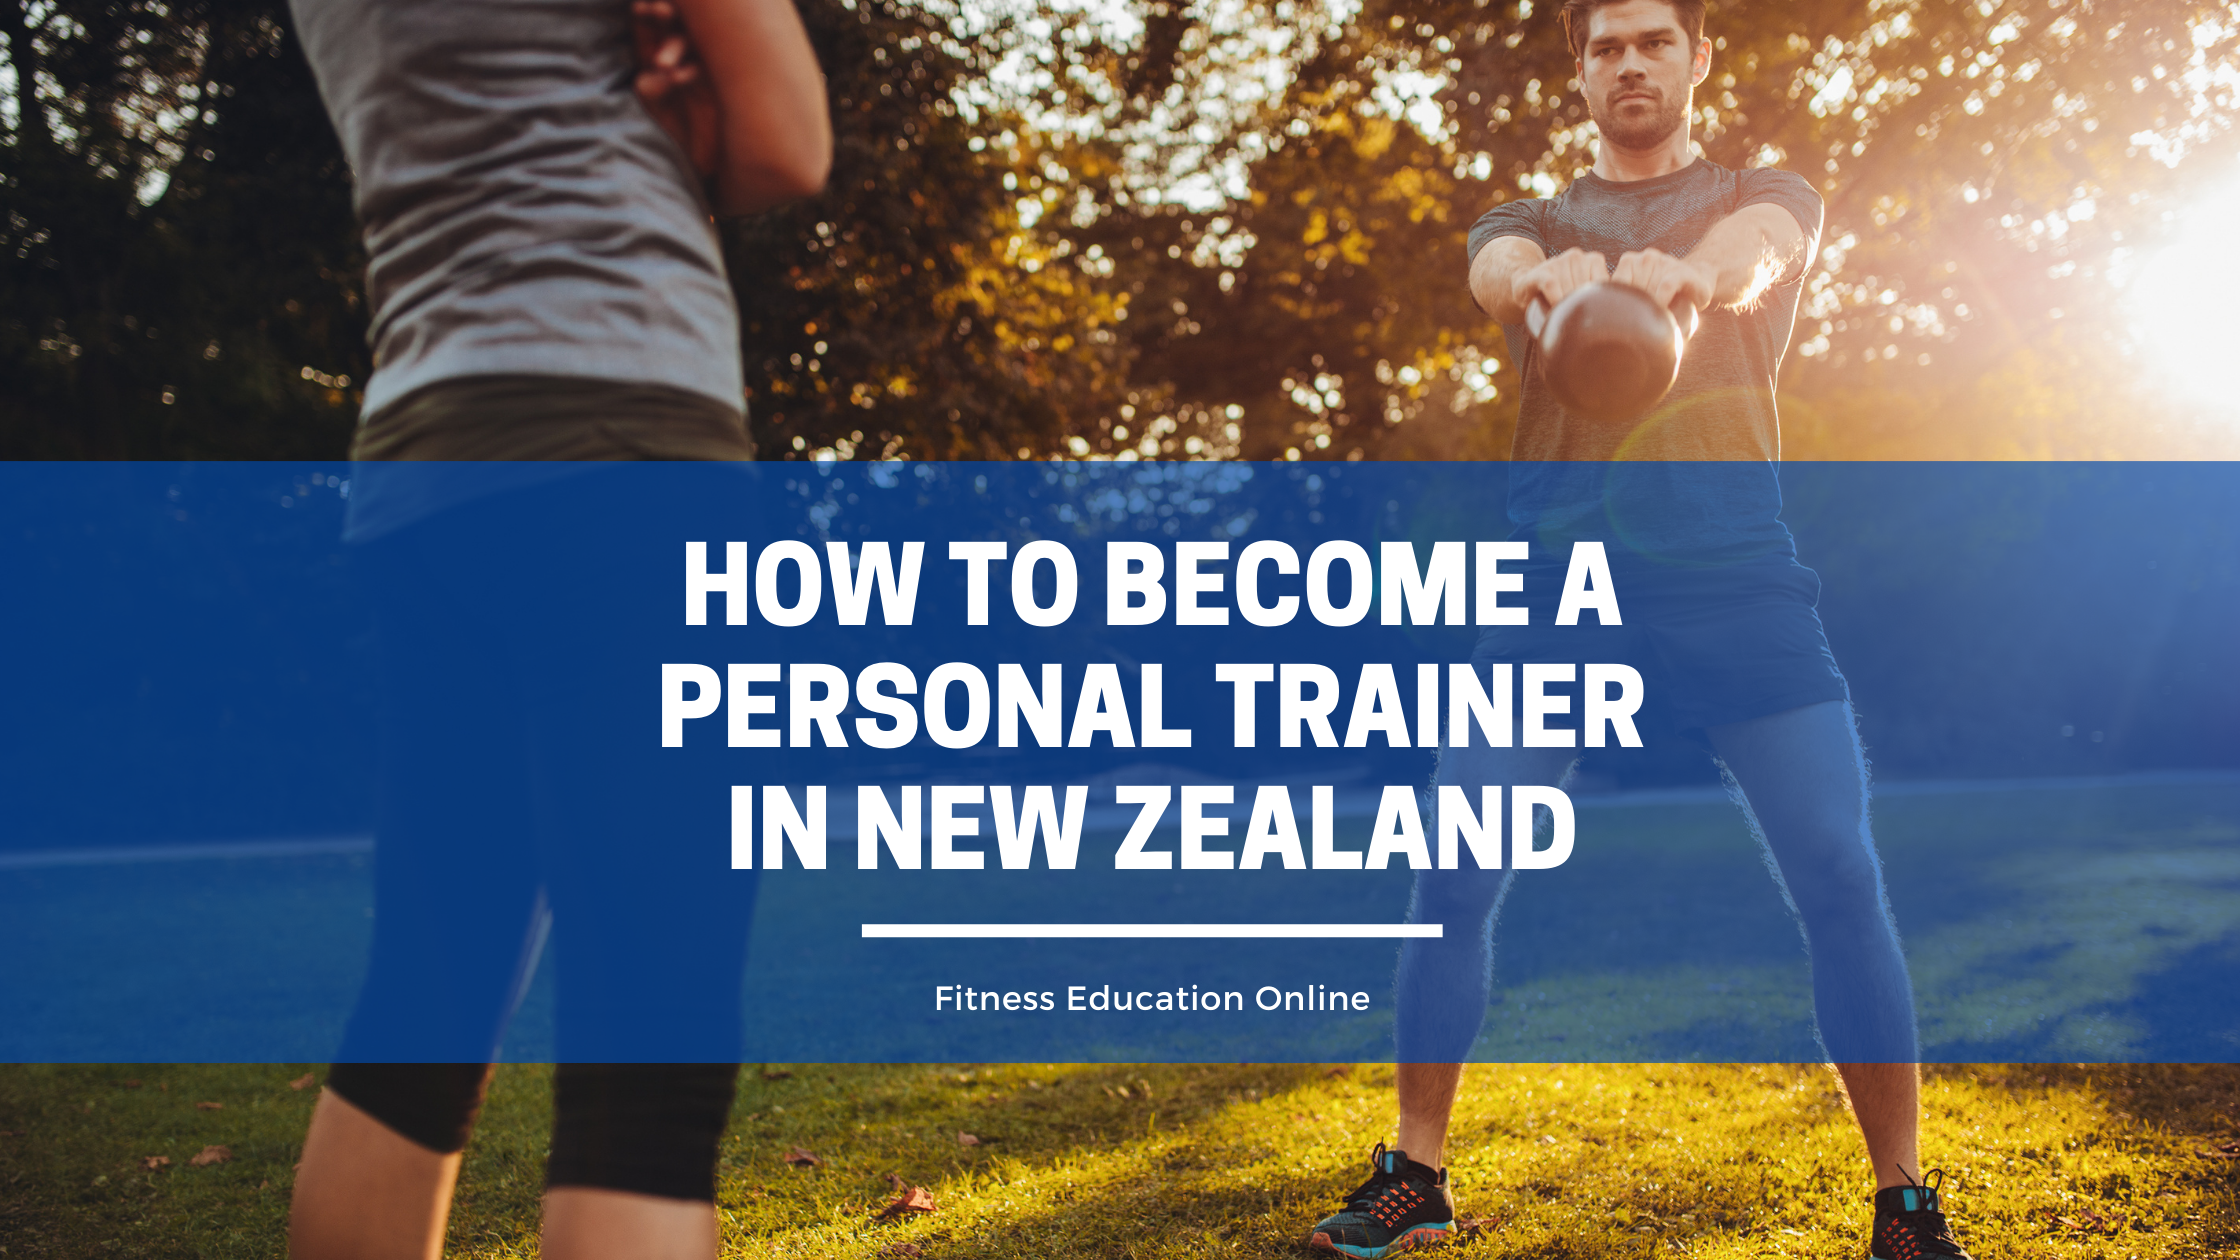 How to Become a Personal Trainer in New Zealand